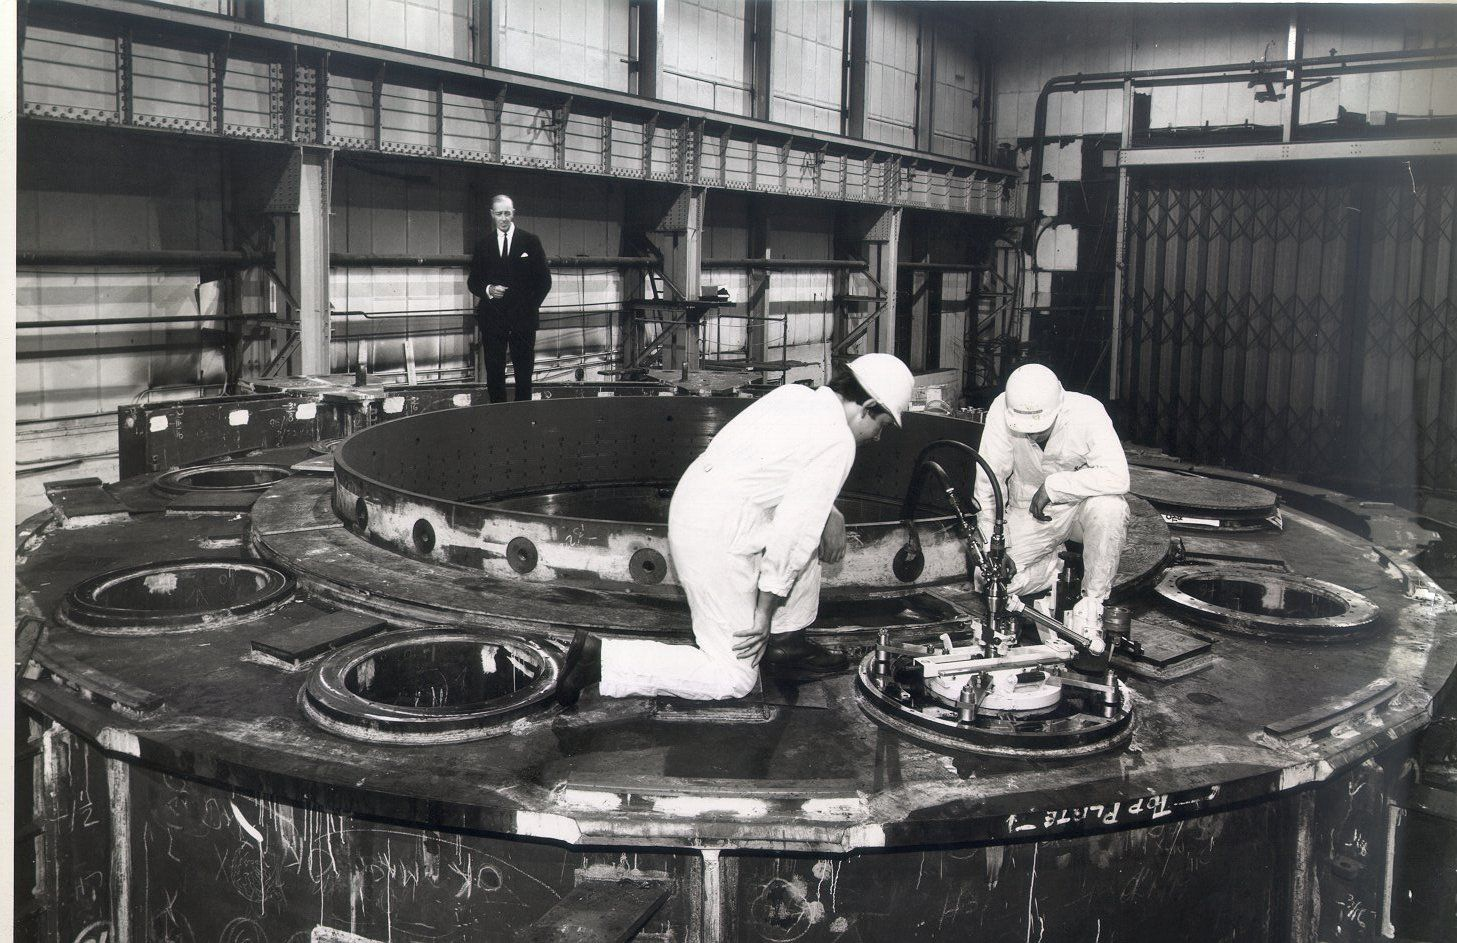 insitu machining inside Nuclear Power Station